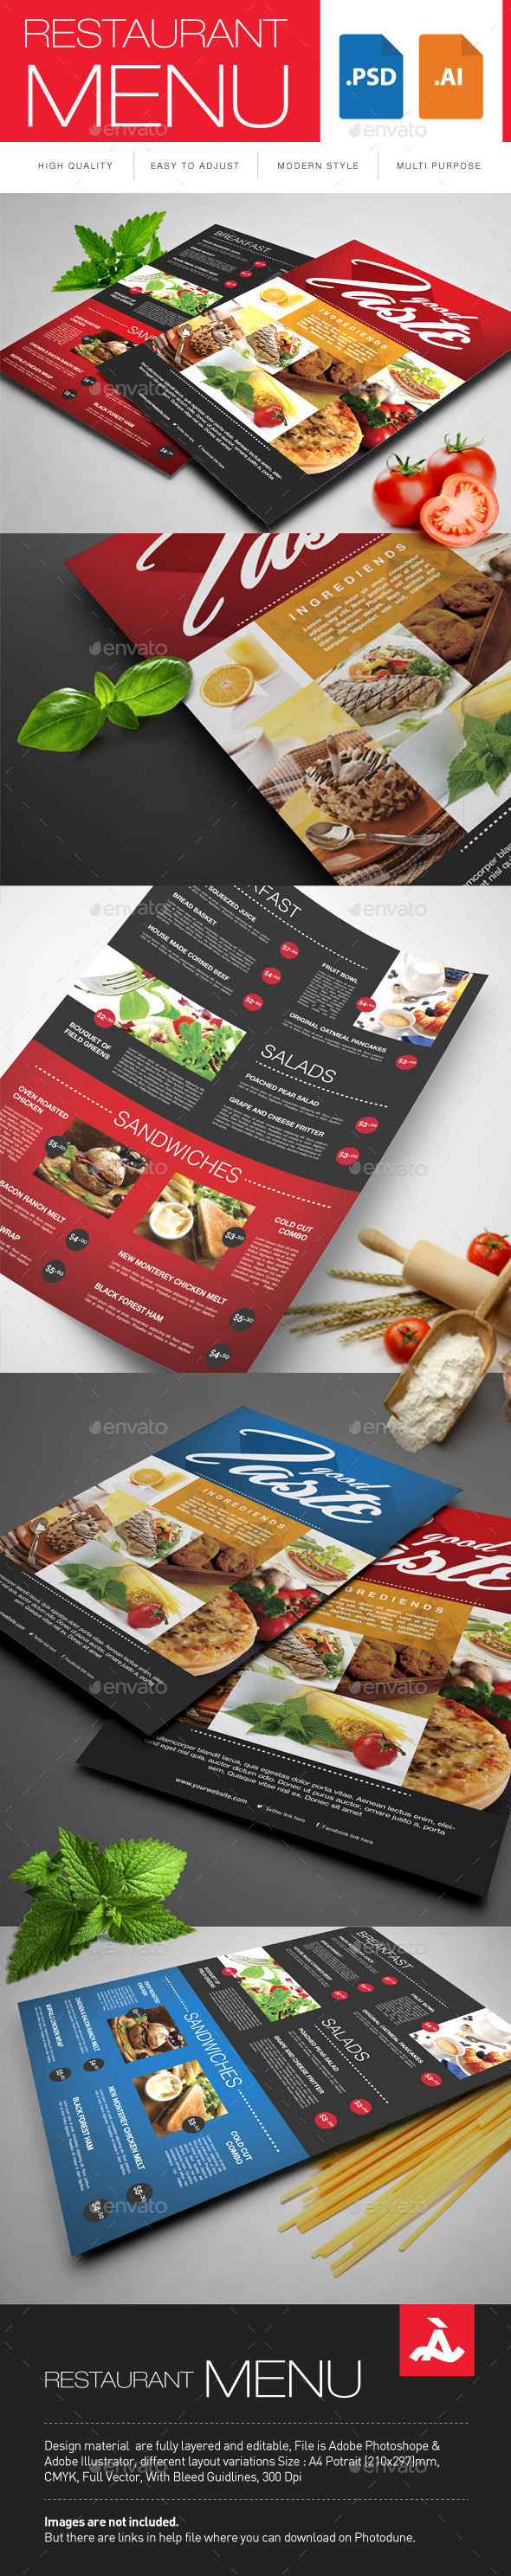 Restaurant Menu - Restaurant Flyers